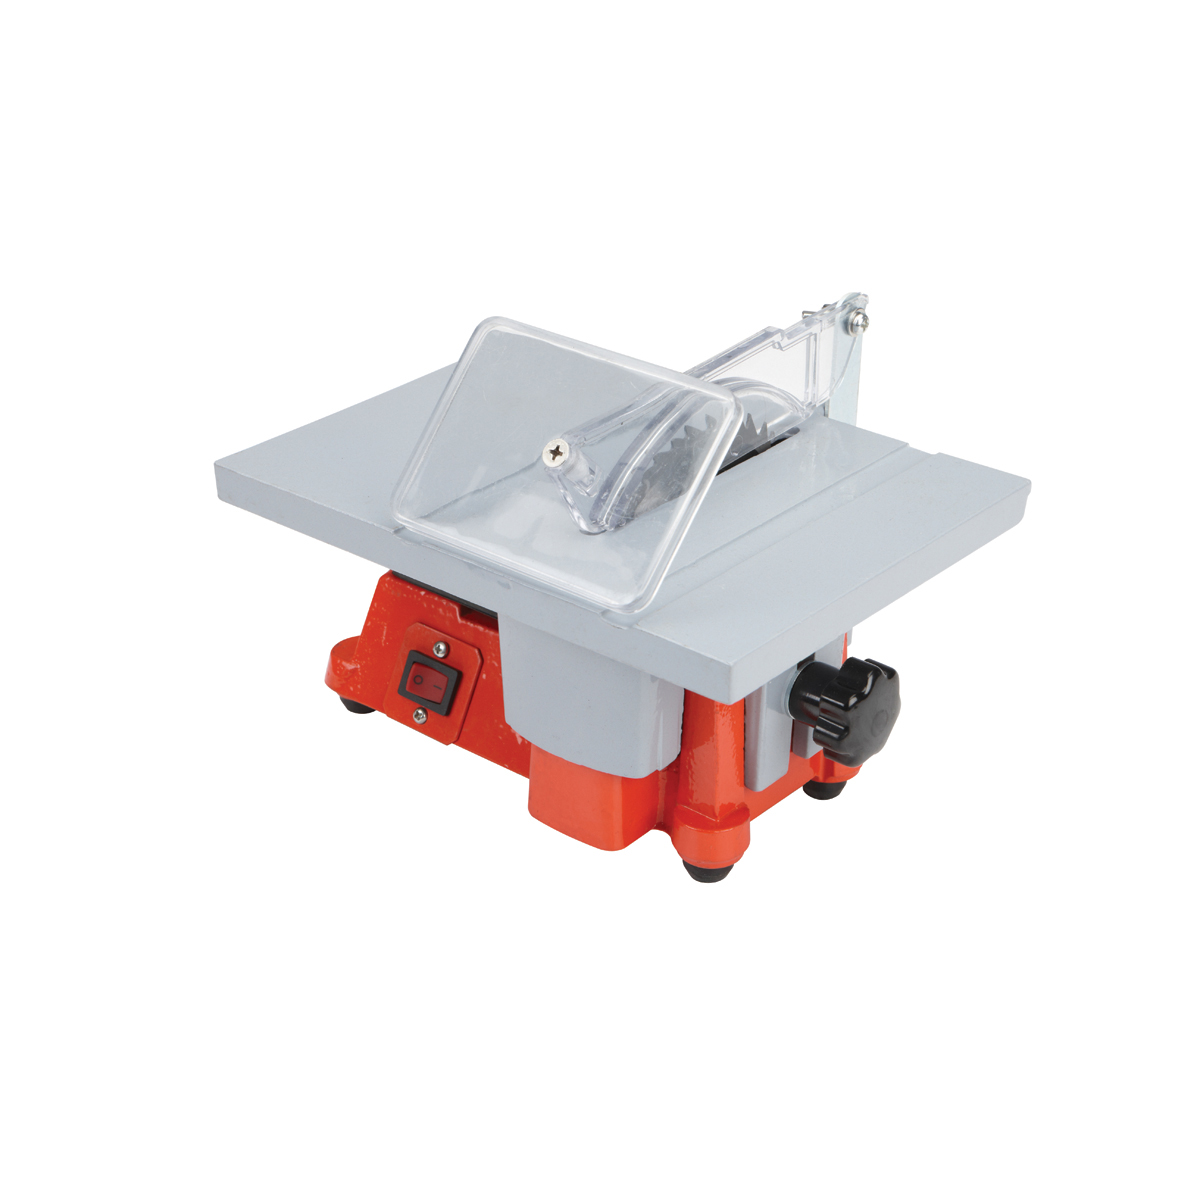 4 In Mighty Mite Table Saw With Blade